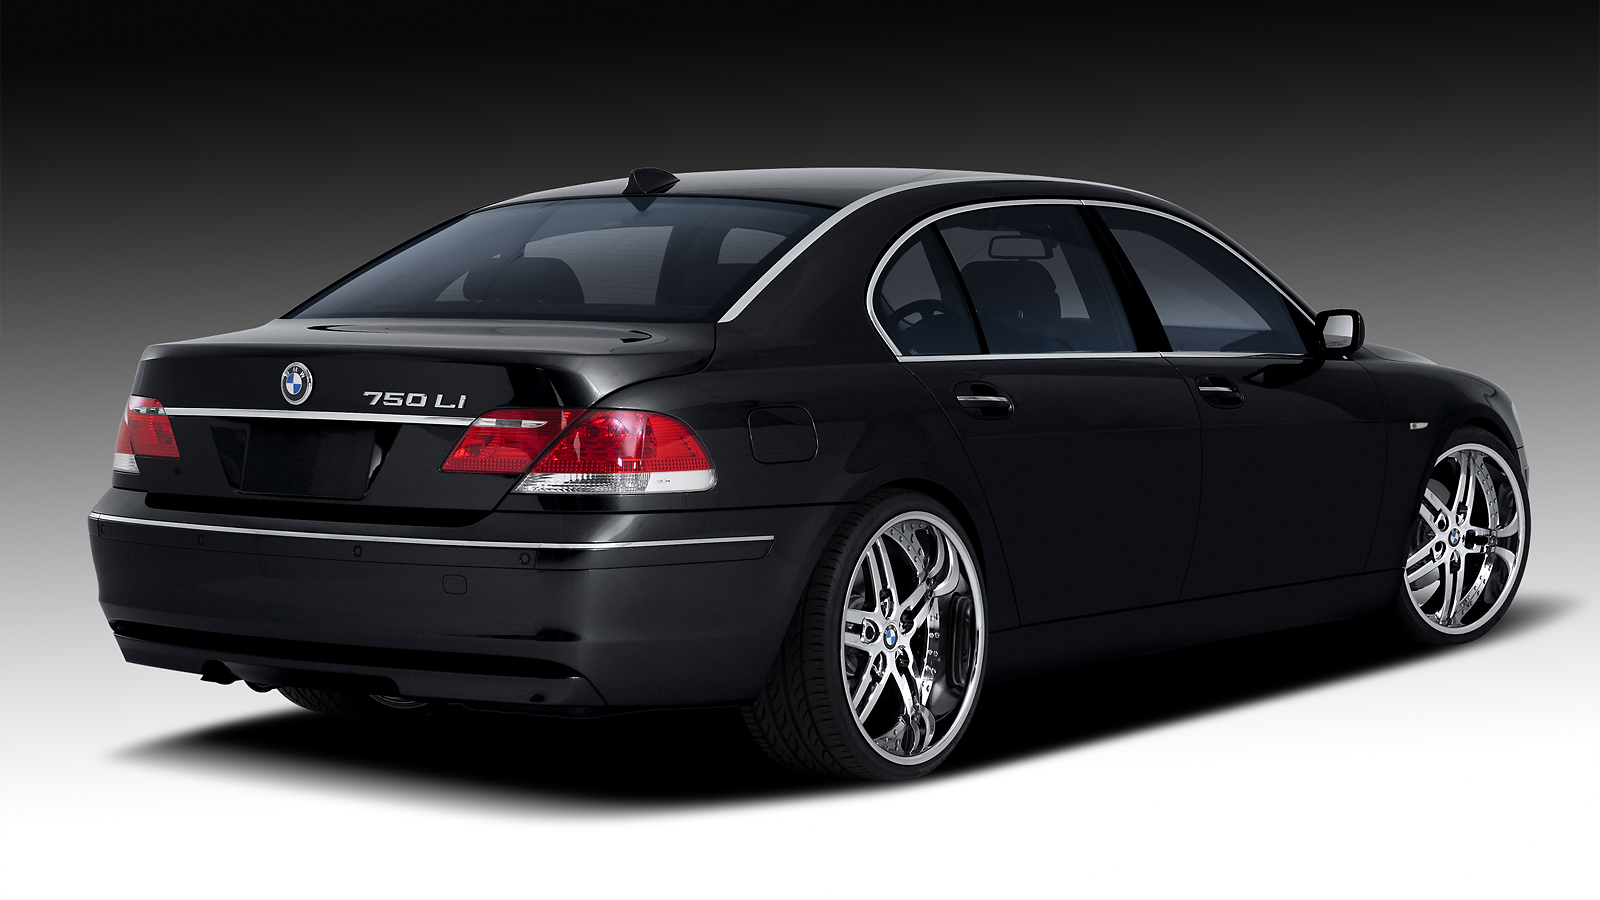 2007 bmw 7 series image 16. Black Bedroom Furniture Sets. Home Design Ideas